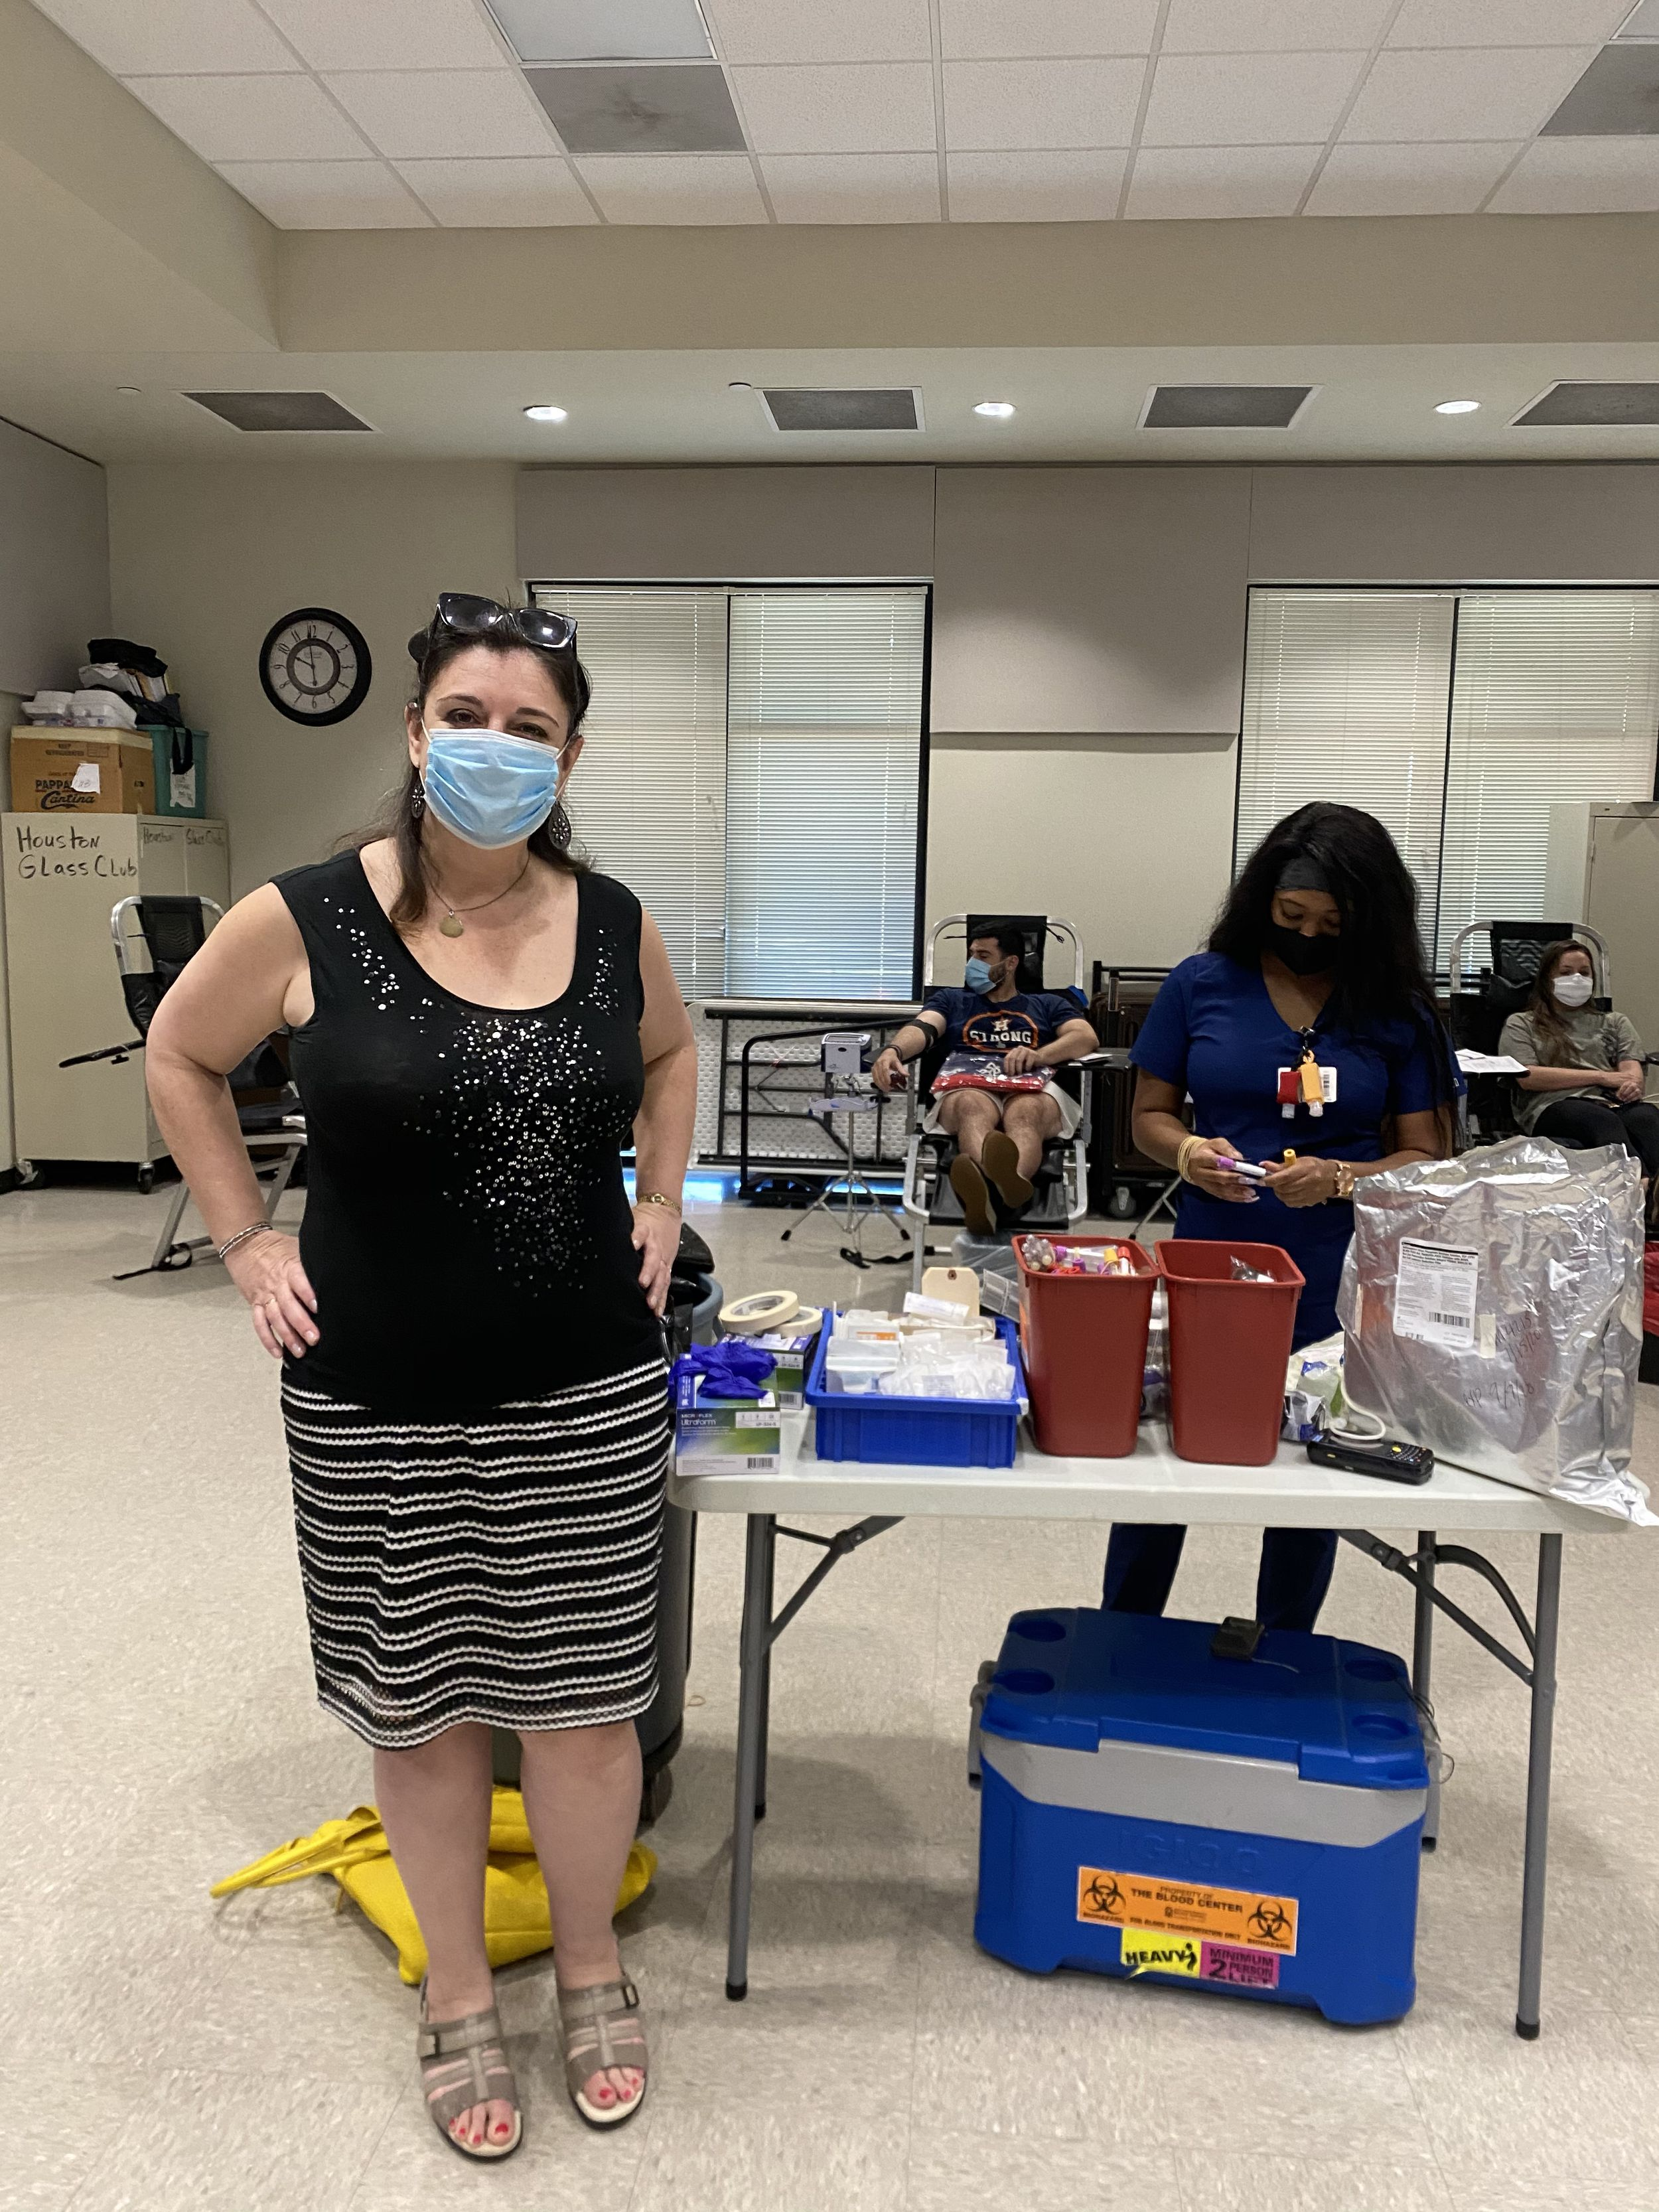 A woman in a mask stands next to a table of blood donation supplies